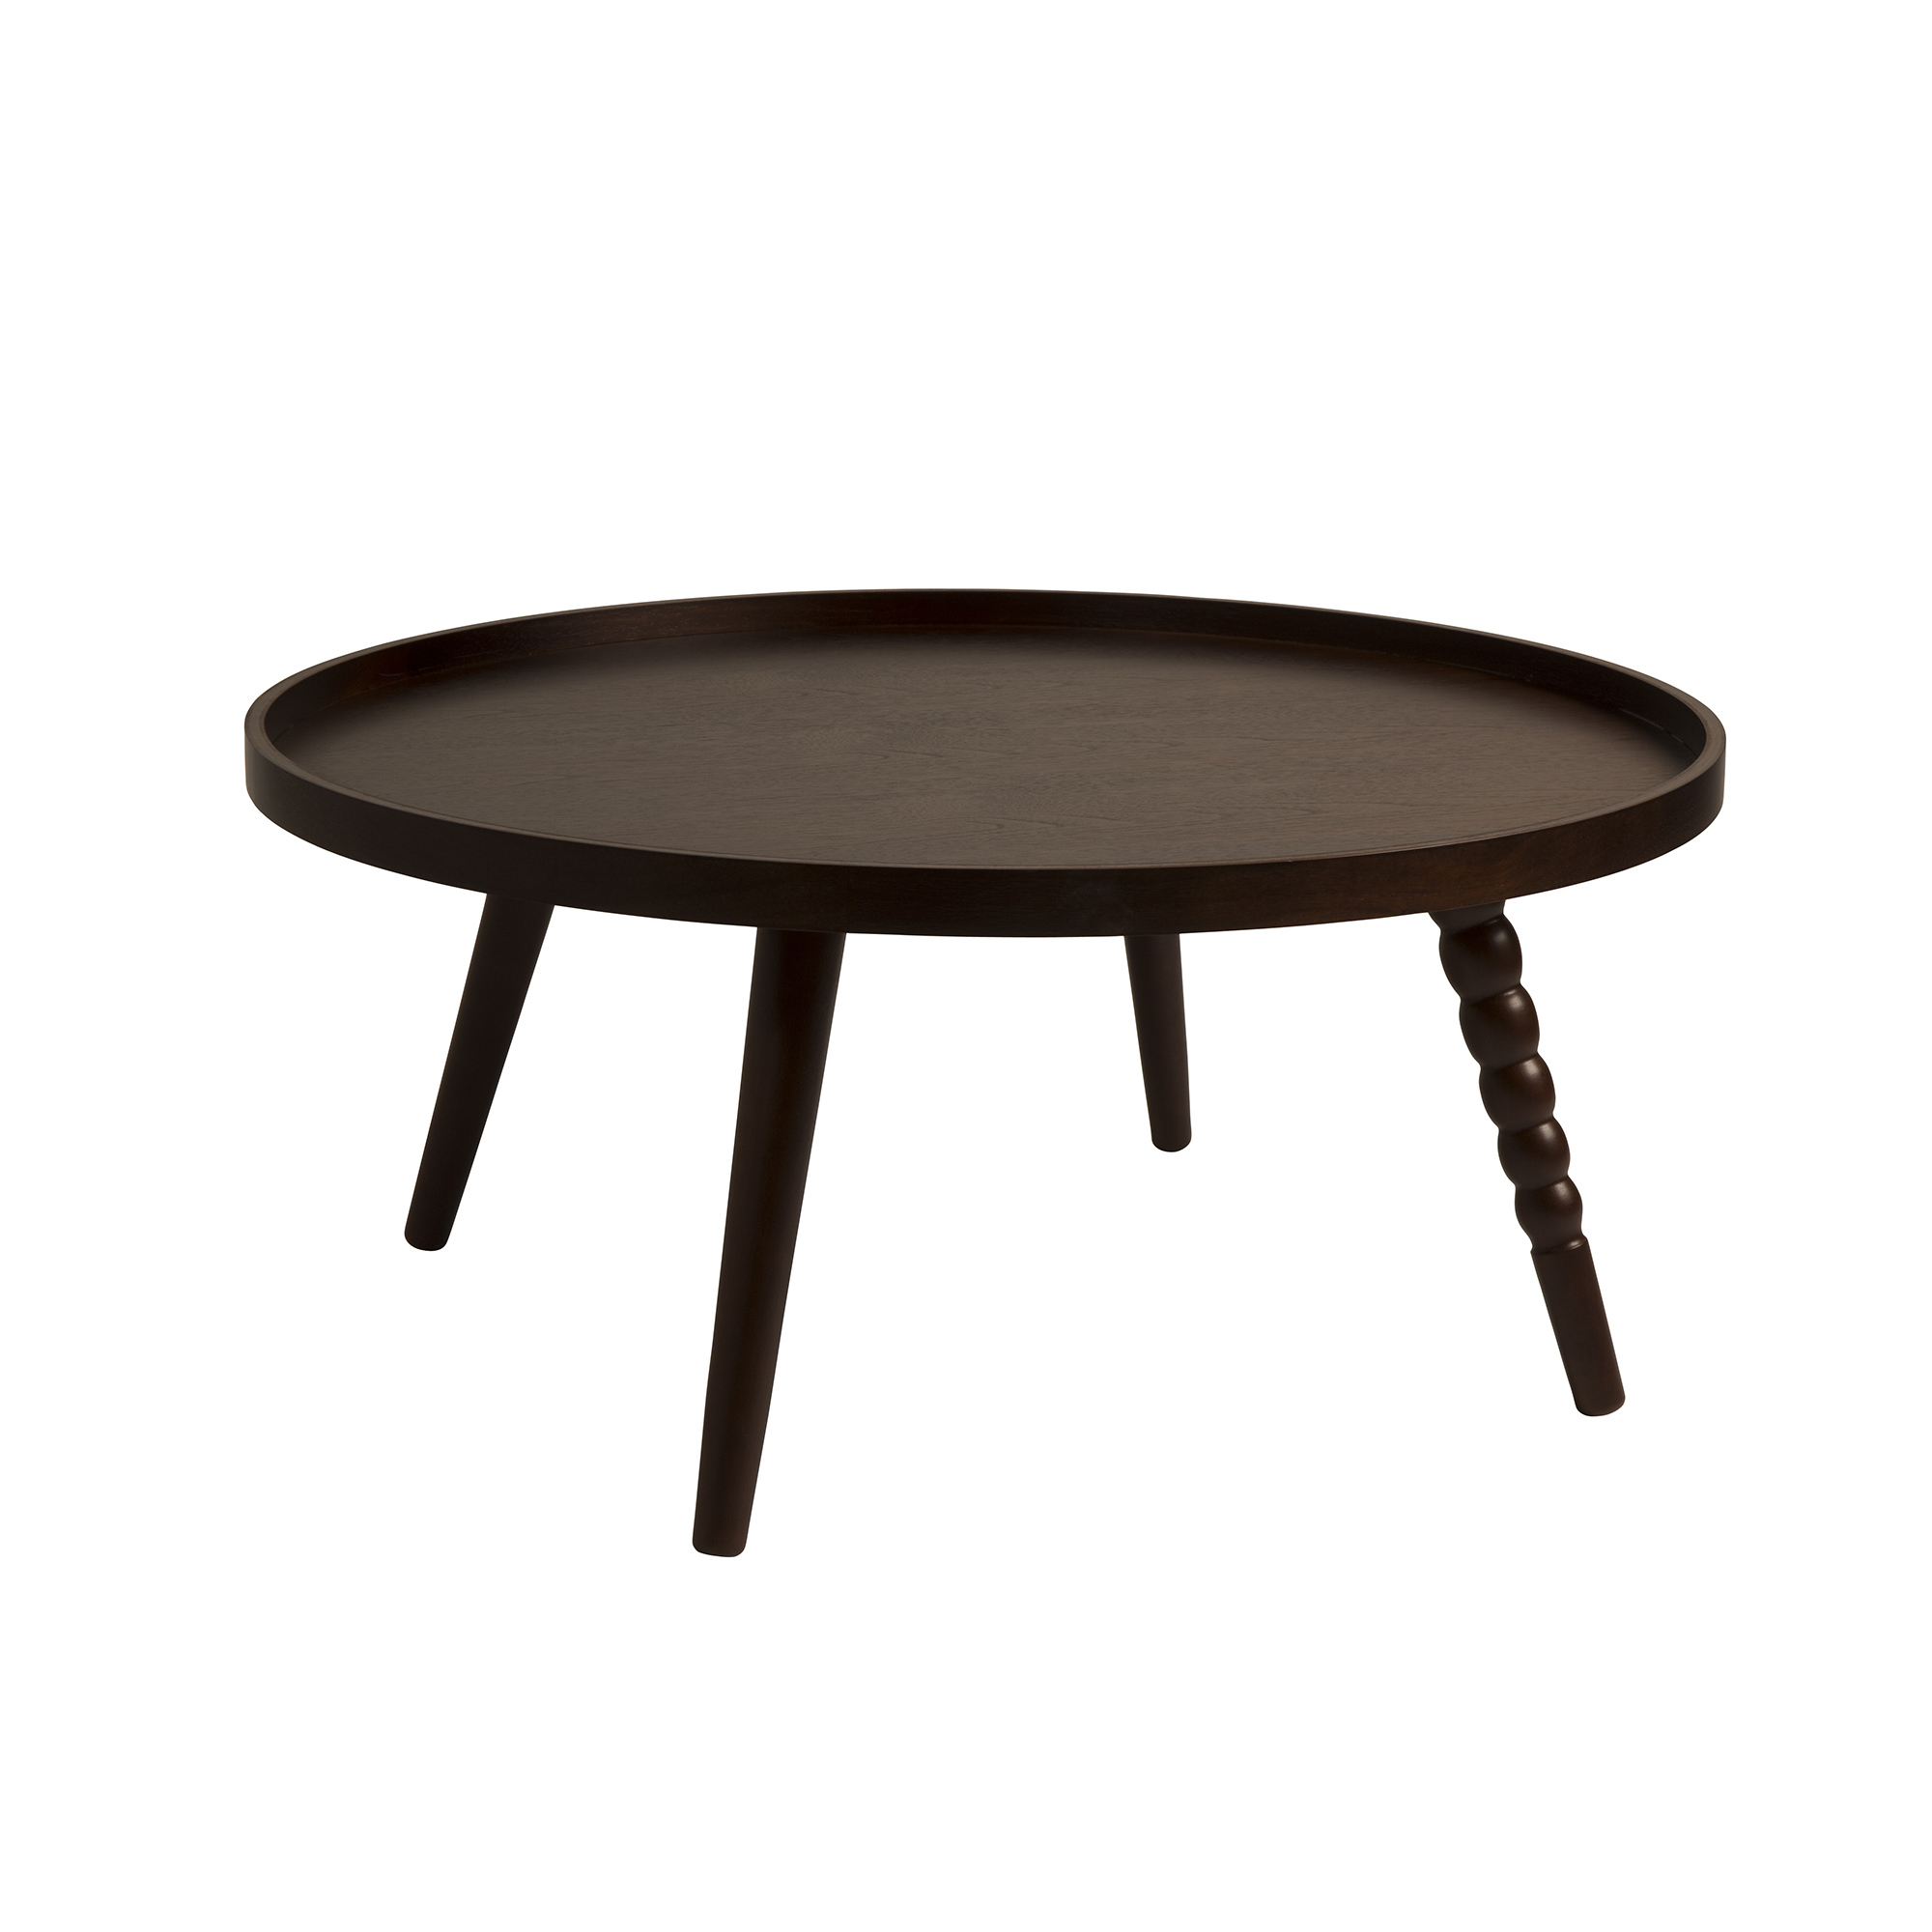 La table basse arabica ethnique chic la maison coloniale - Table basse coloniale ...